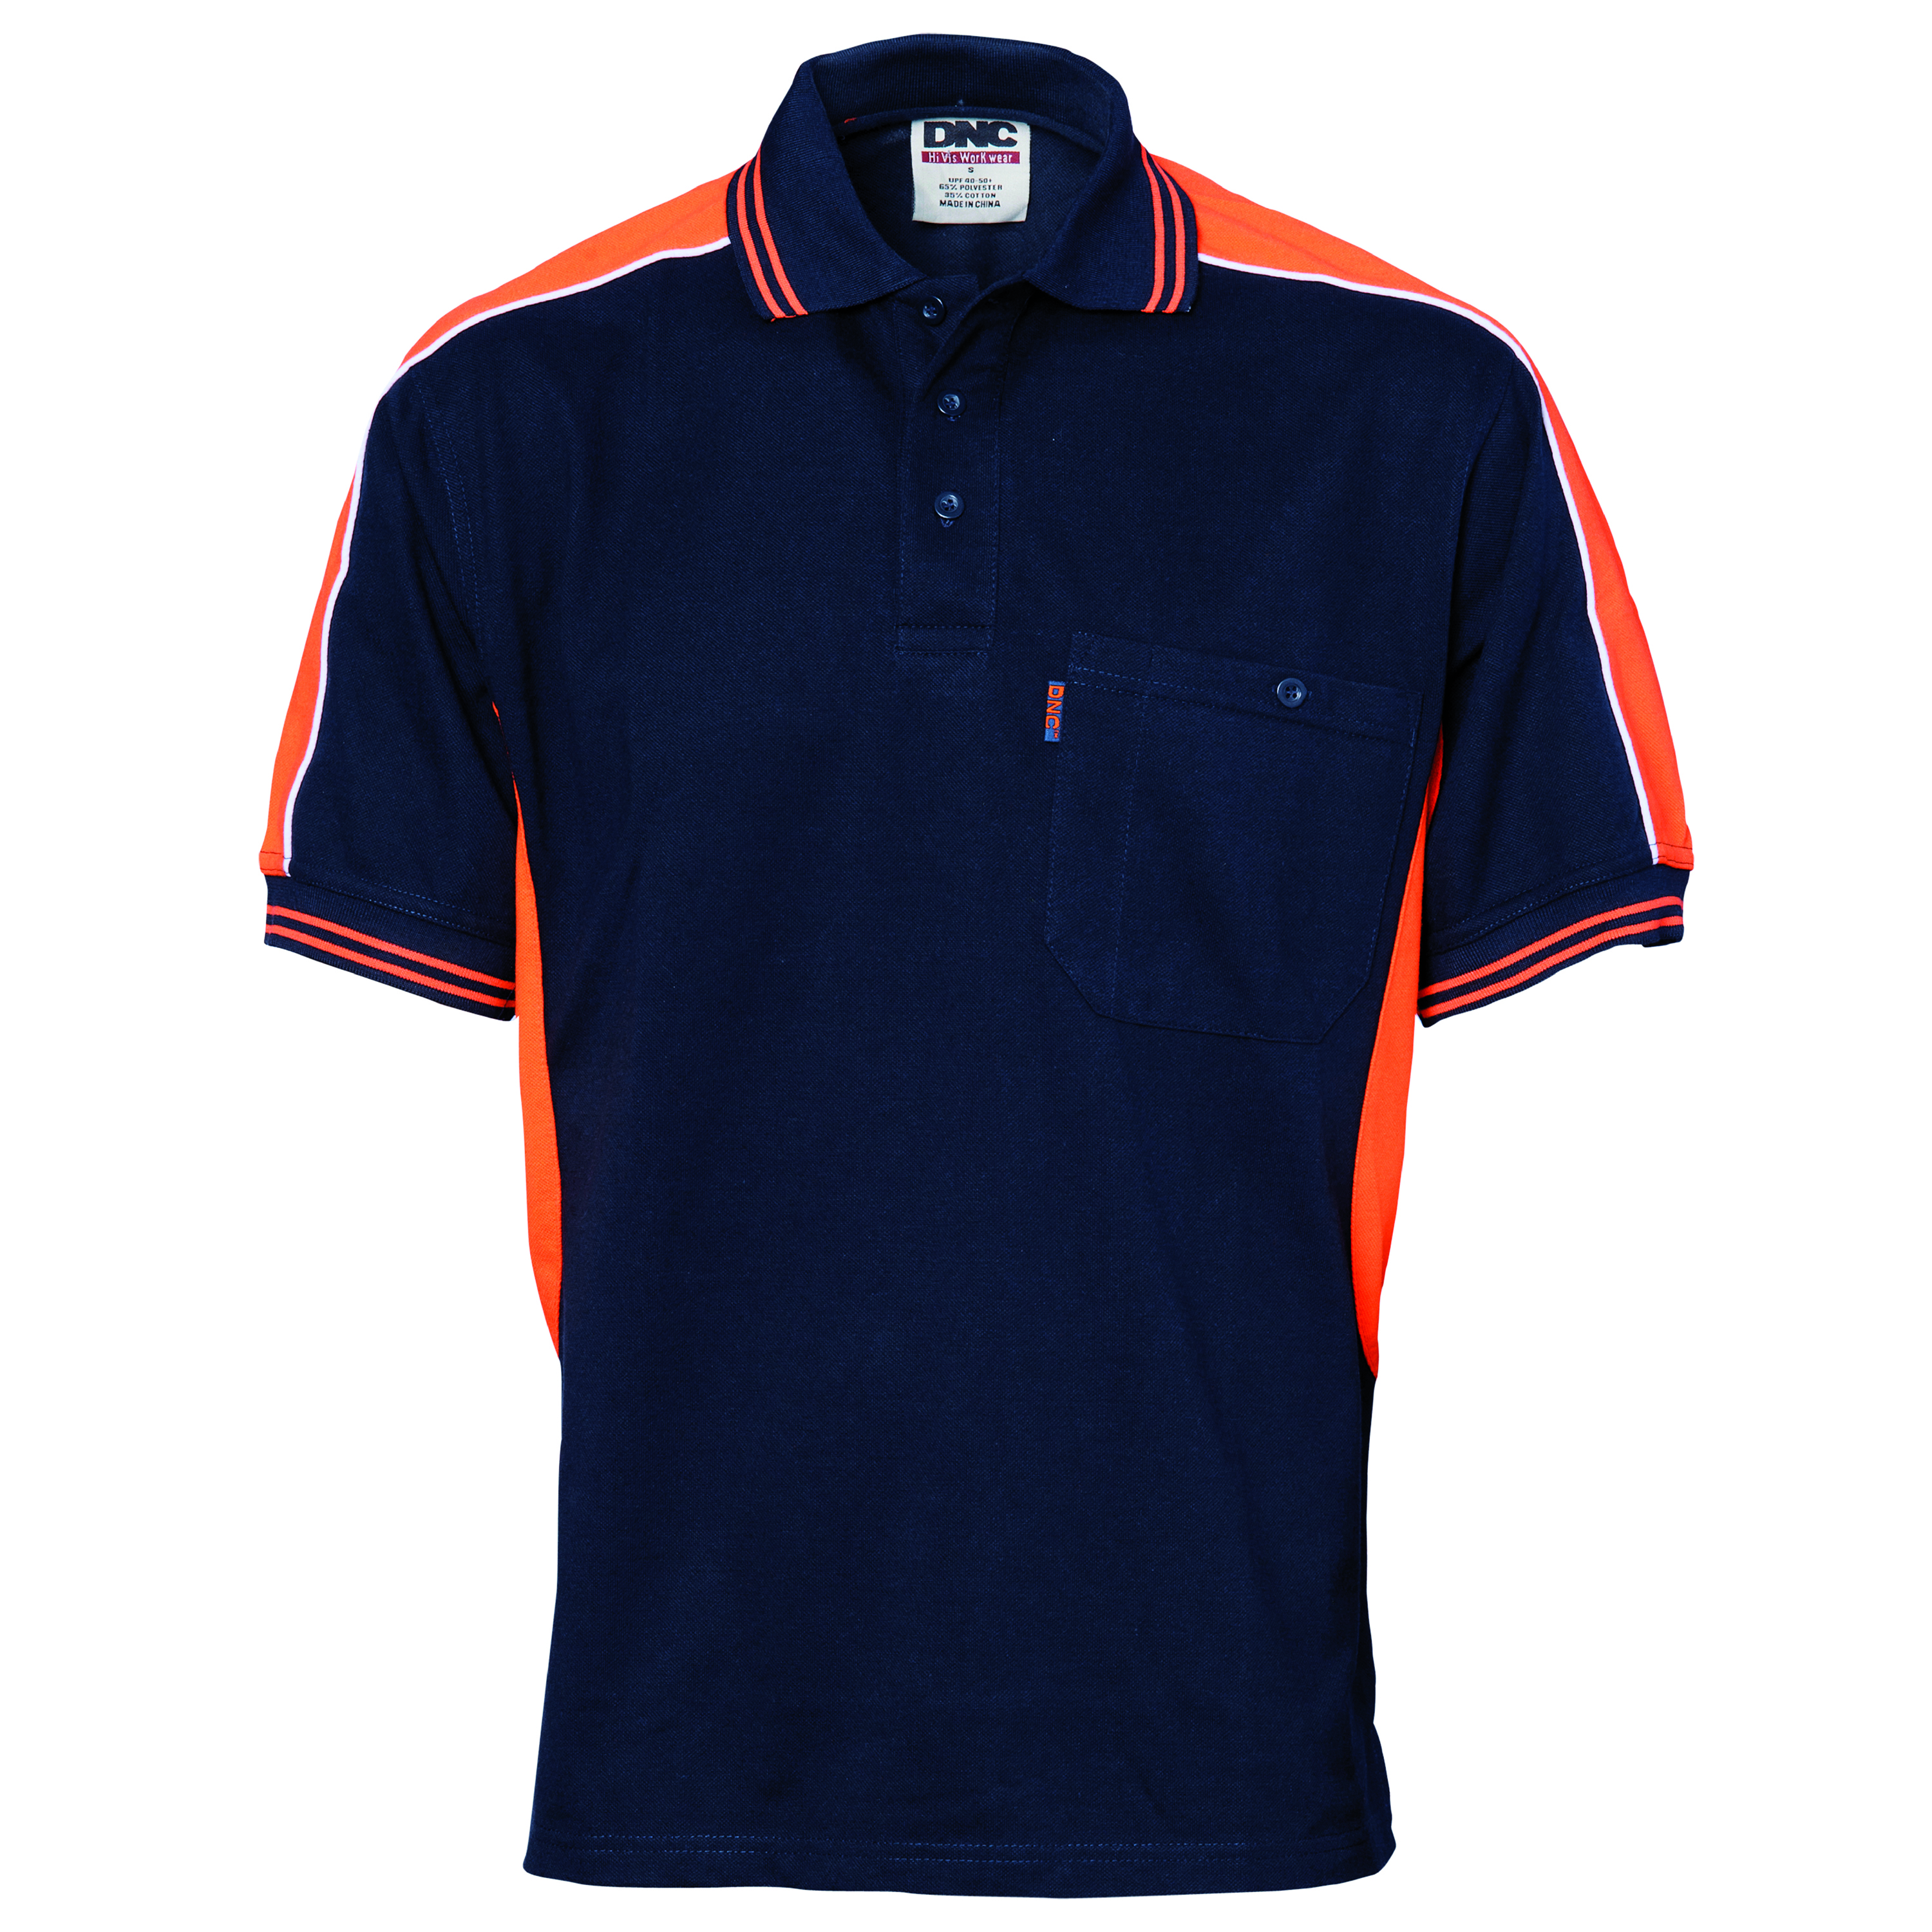 polo work shirts australia